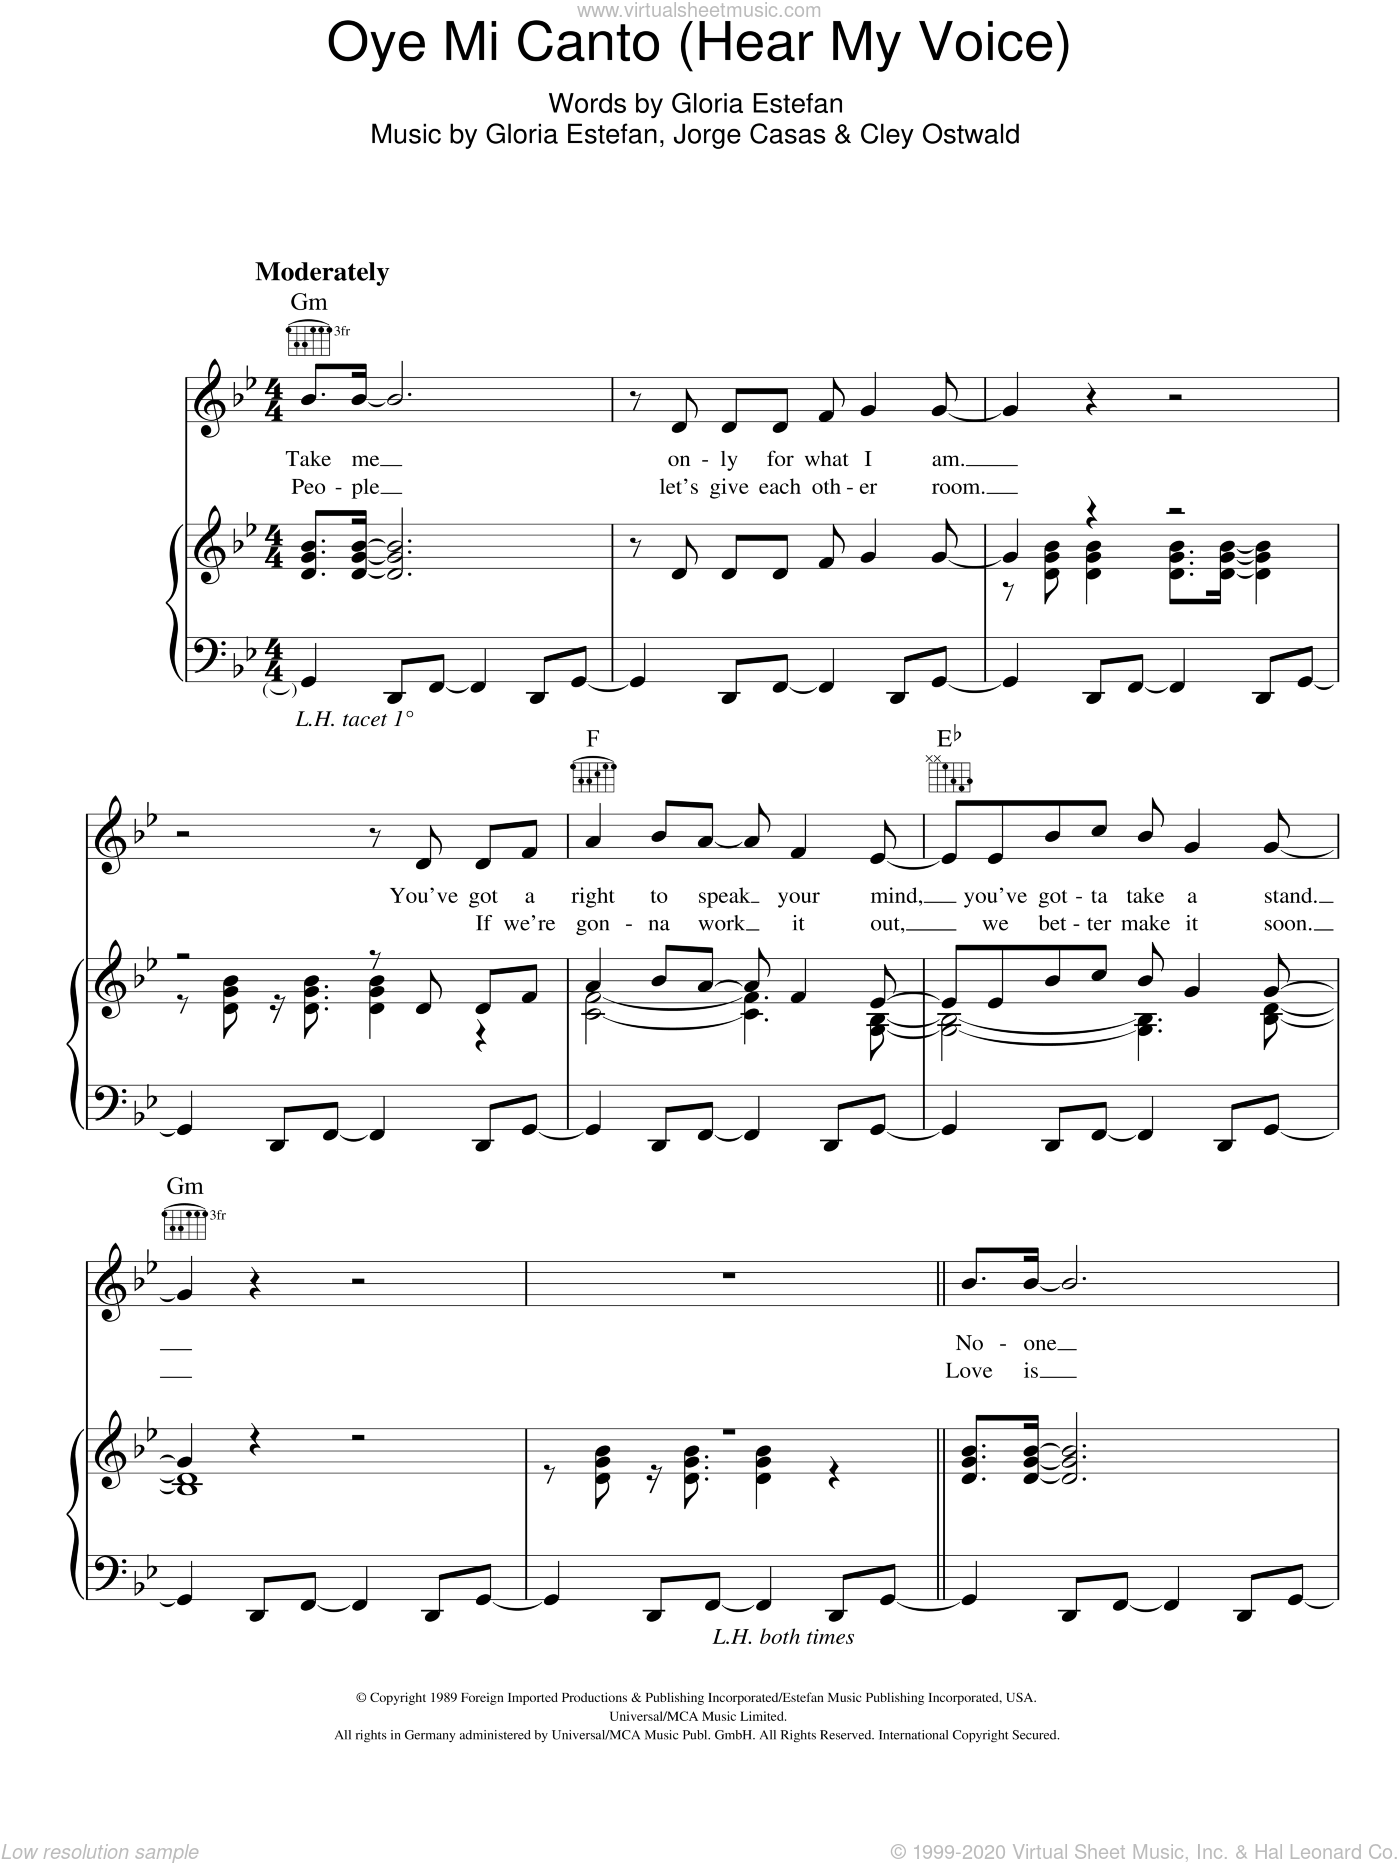 Oye Mi Canto (Hear My Voice) sheet music for voice, piano or guitar by Gloria Estefan, Cley Ostwald and Jorge Casas, intermediate